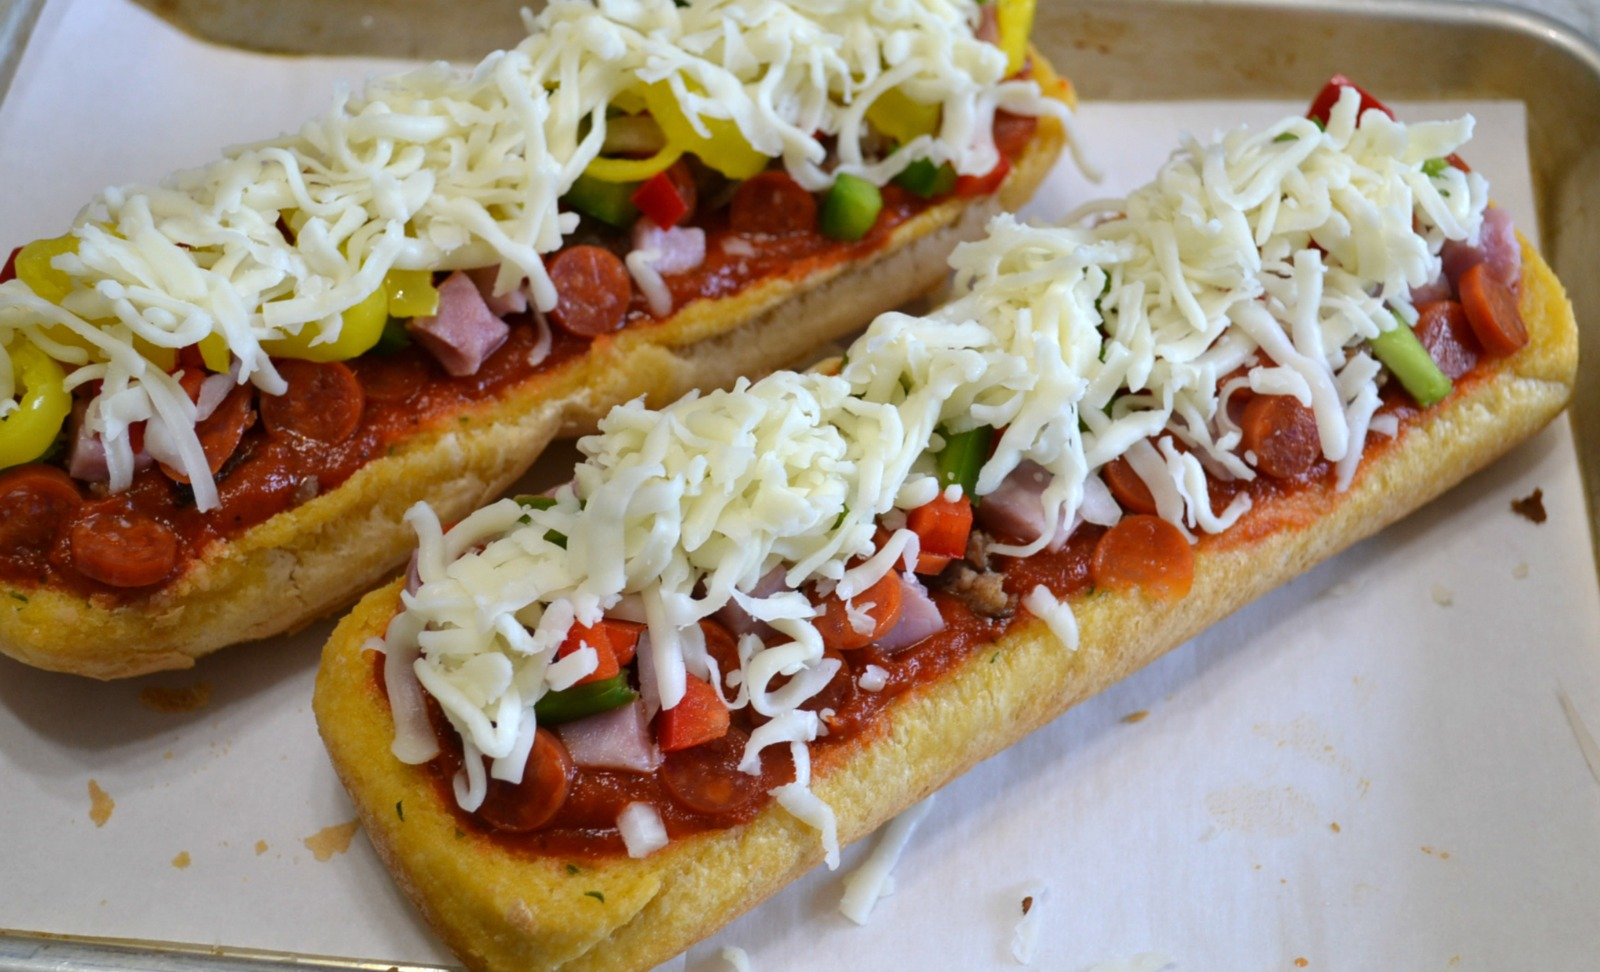 A quick and easy pizza made on a loaf of garlic bread. Add your favorite toppings and cheese for a great snack or lunch.